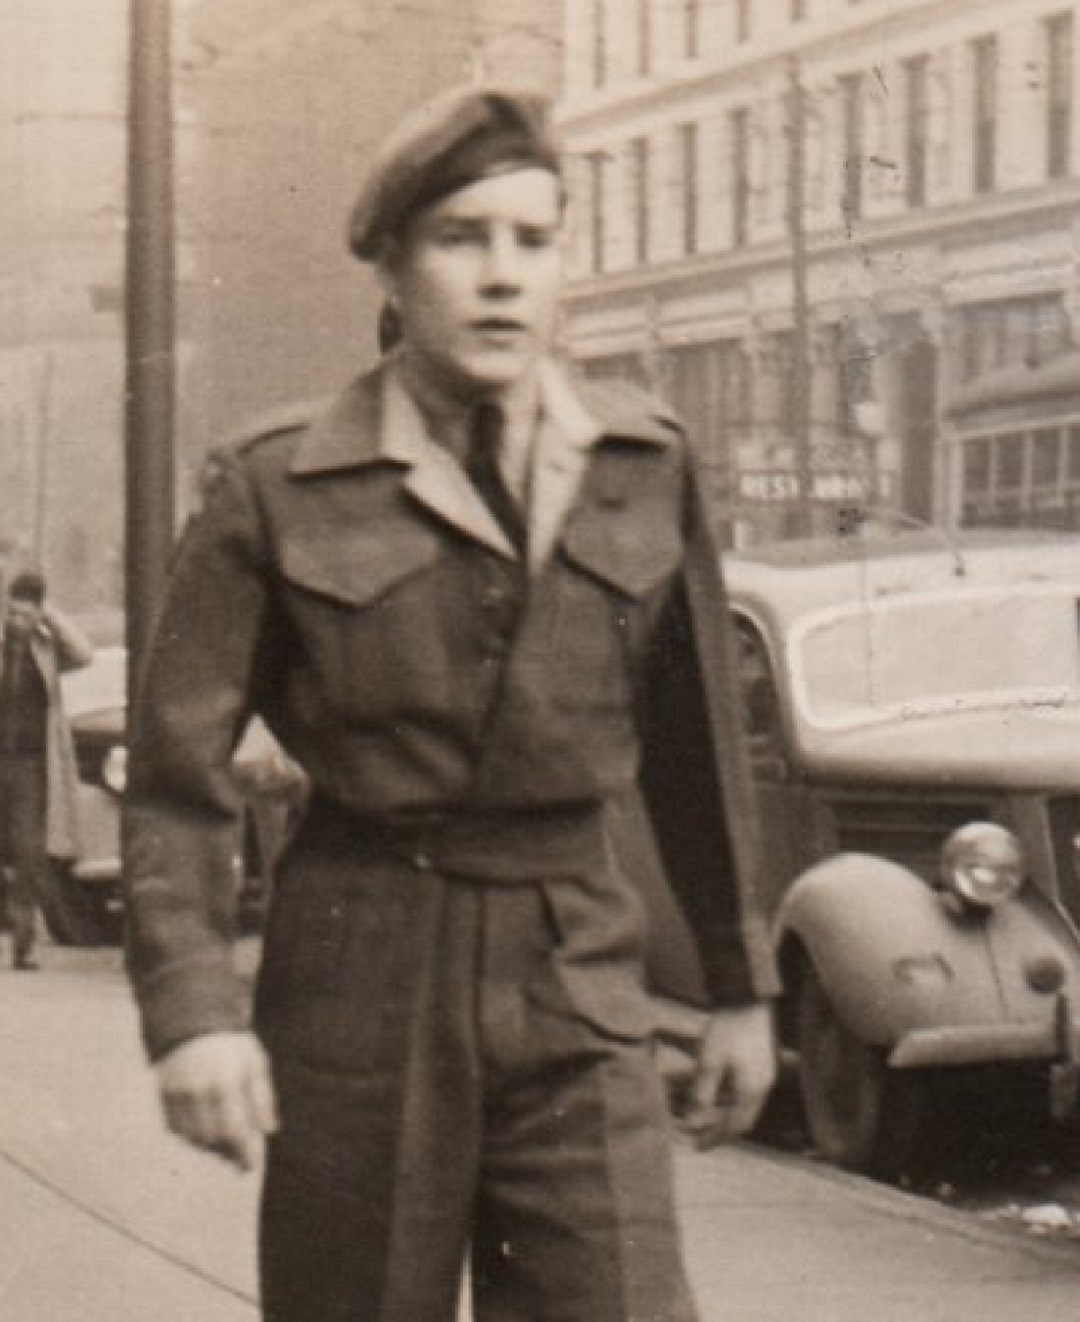 'I was one of the lucky ones,' Bill once wrote in a letter after a local newspaper published a photo of him attending a Remembrance Day ceremony. (Submitted by Valerie Noble)